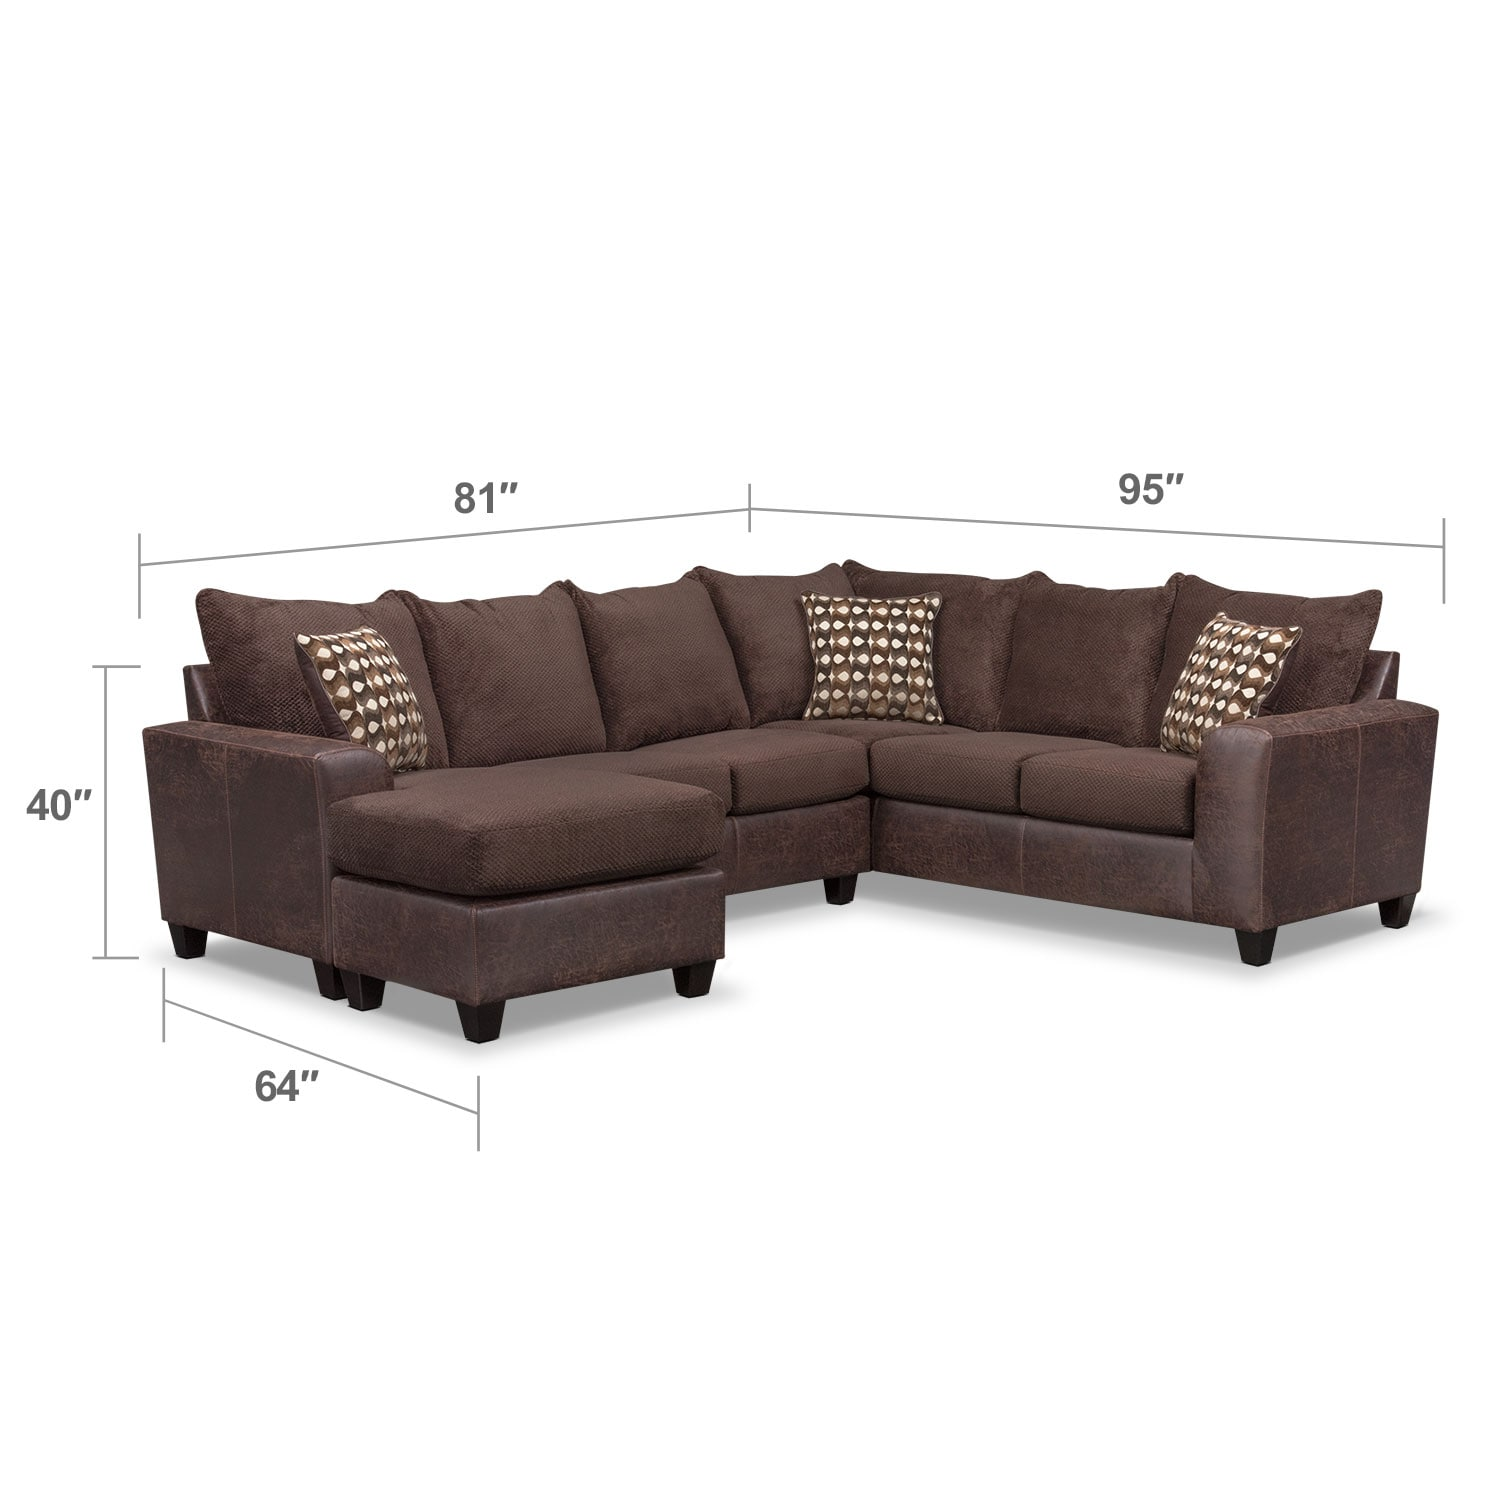 Brando 3 piece sectional with modular chaise chocolate for 3 piece sectional sofas with chaise